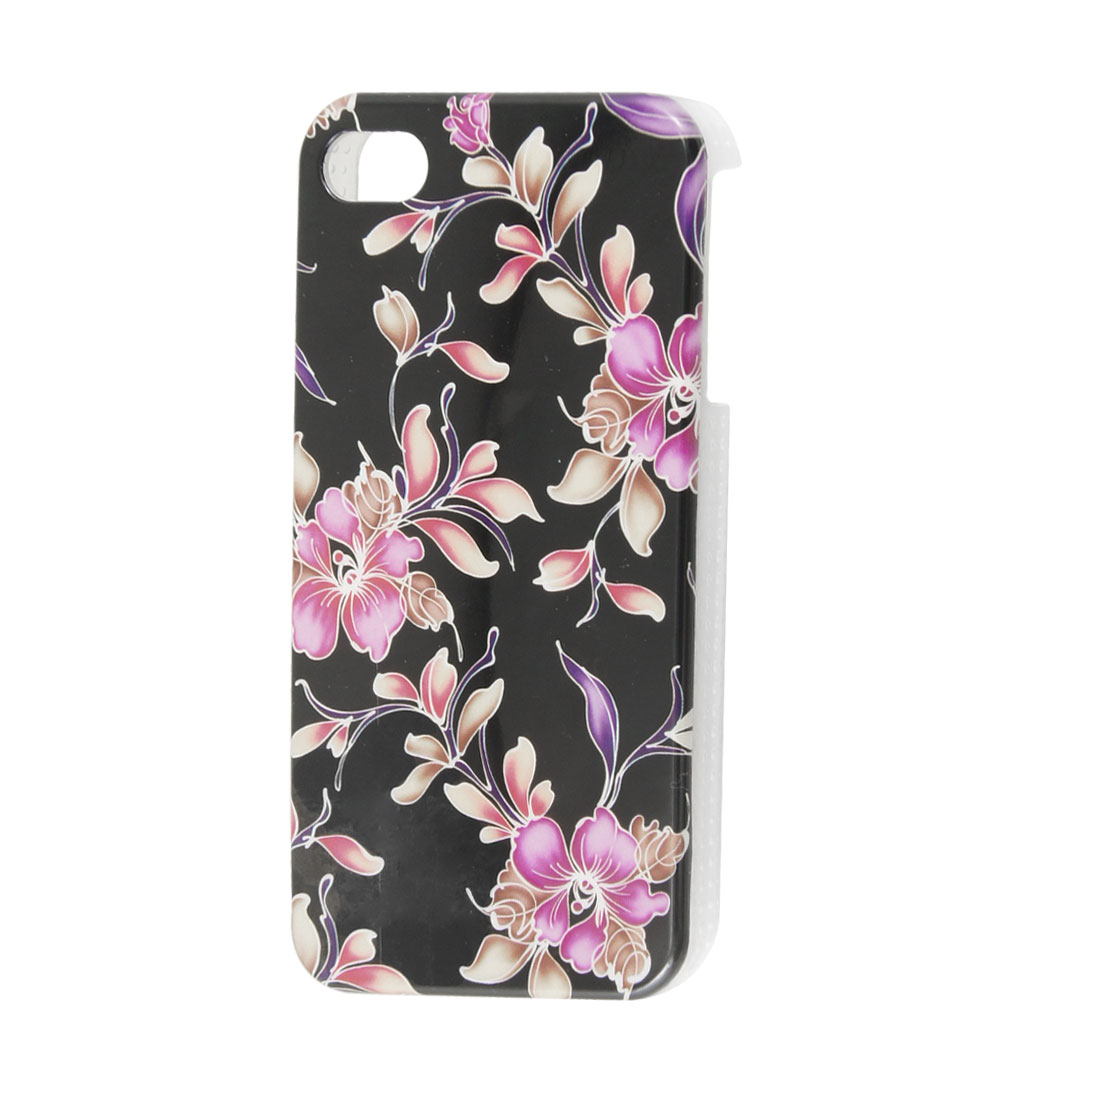 Fuchsia Flowers Pattern Black IMD Plastic Back Guard for iPhone 4S 4GS